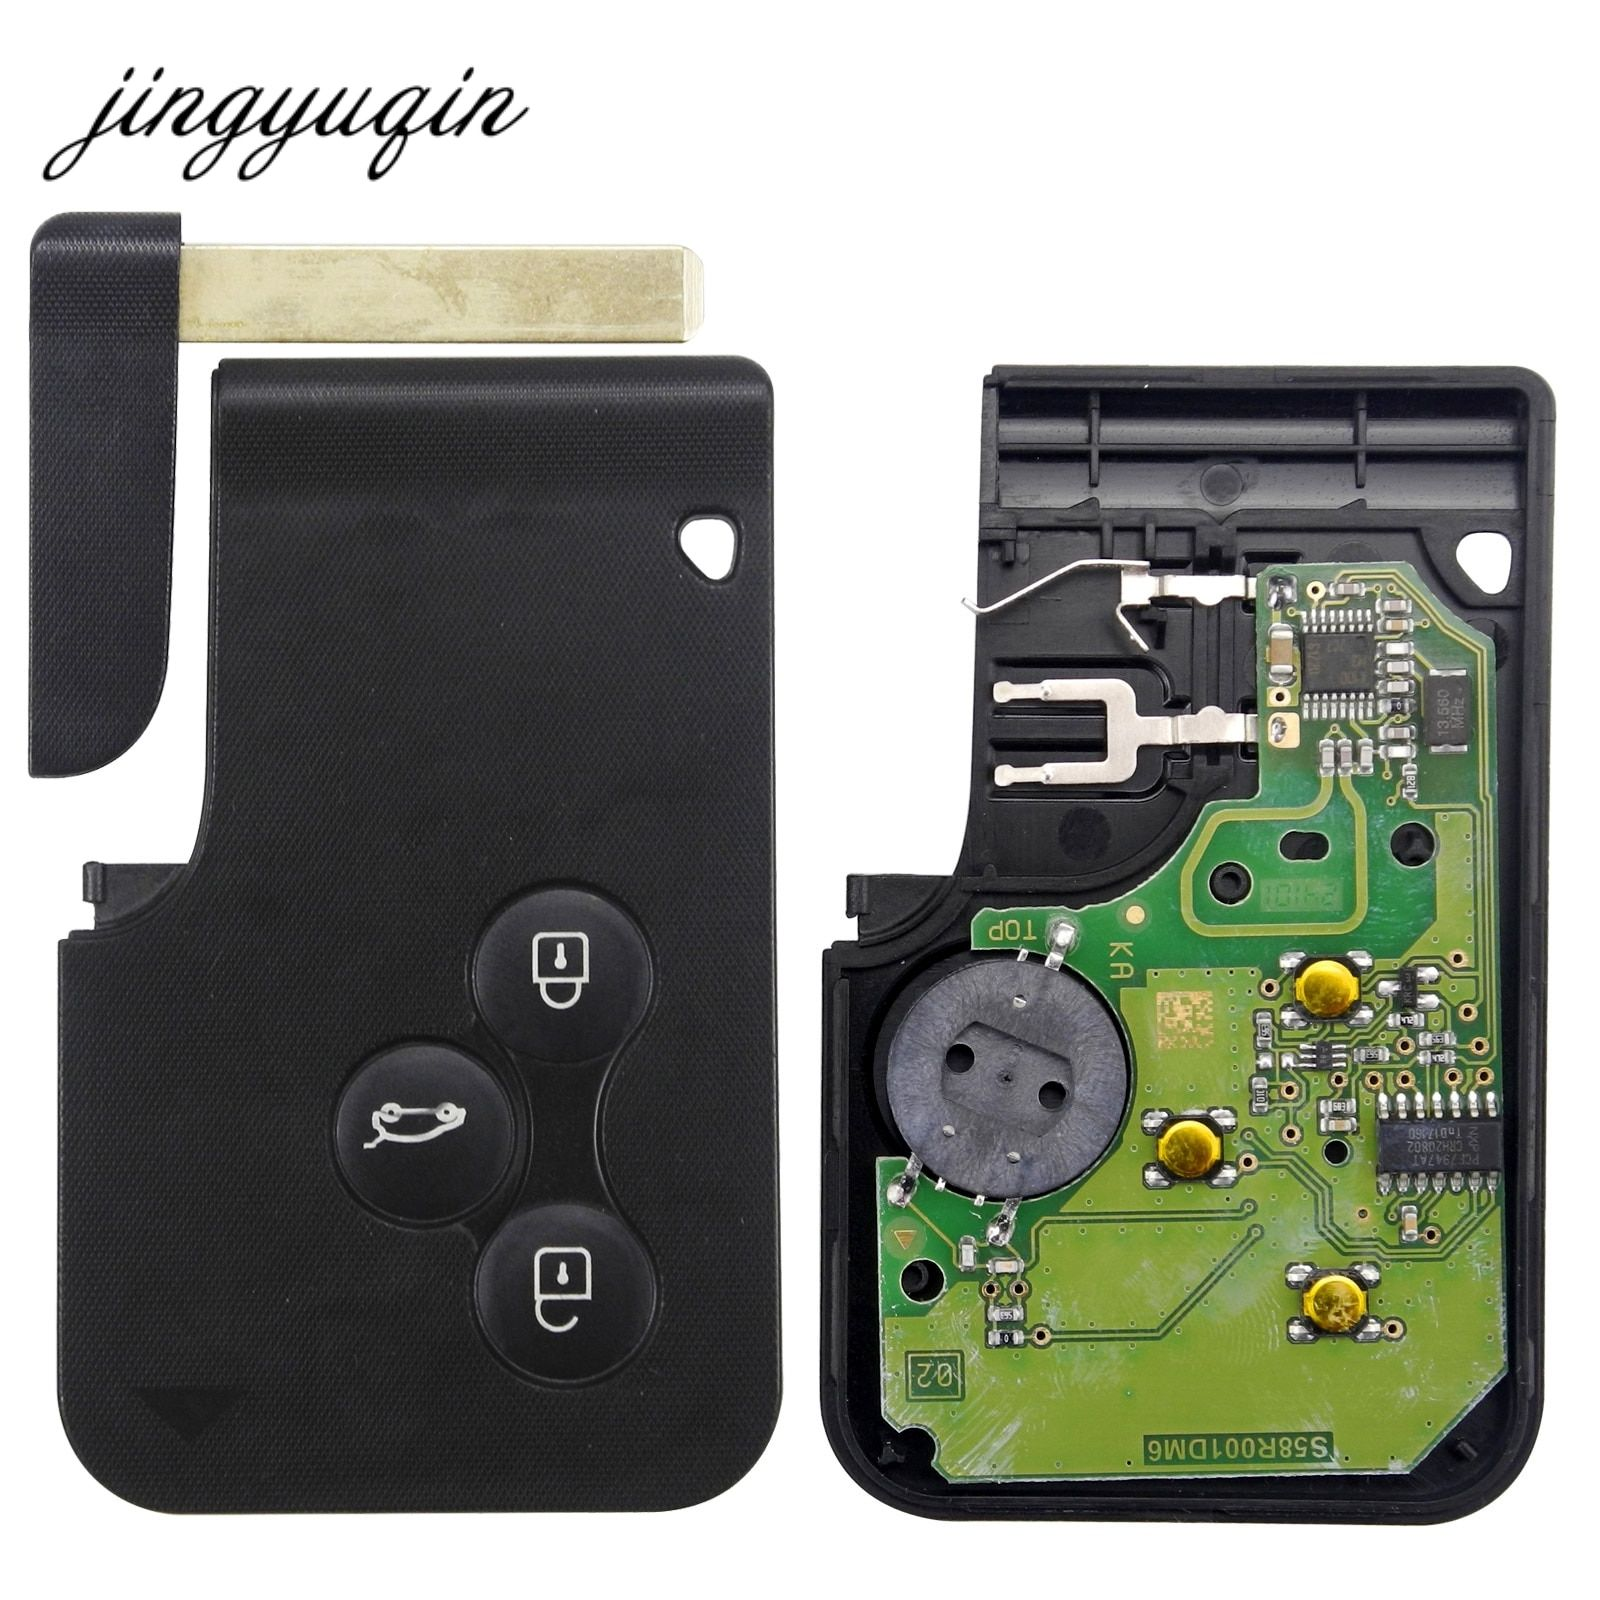 jingyuqin Smart Key Card for Renault Megane II Scenic II Grand Scenic 2003-2008 <font><b>433mhz</b></font> PCF7947 Chip ID46 3 Button Remote PCB